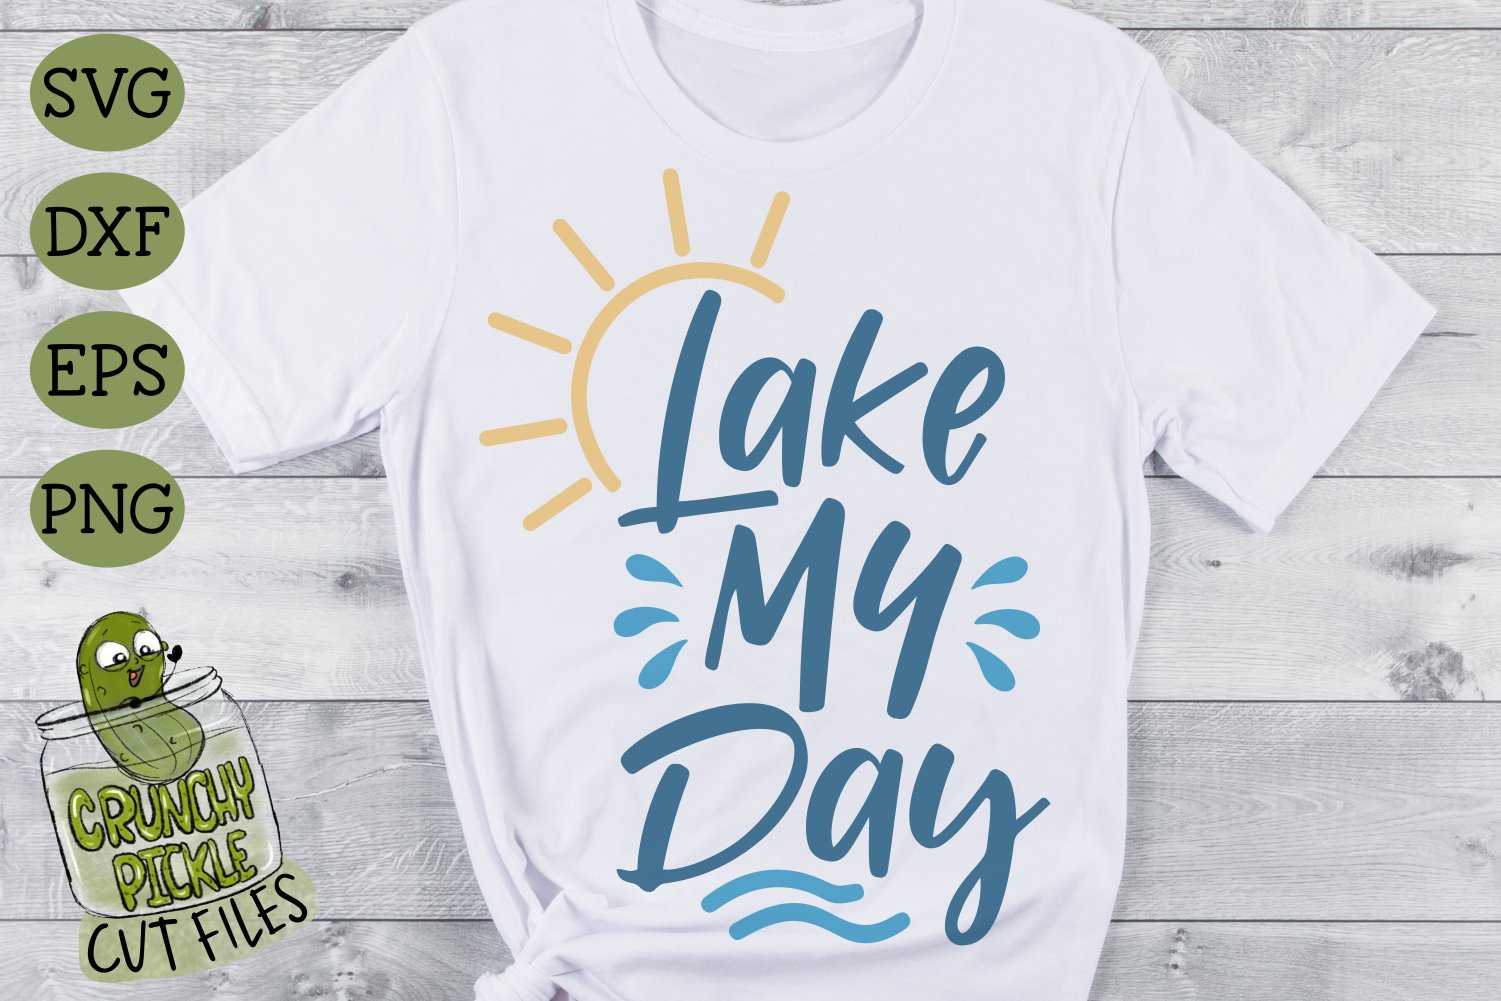 Lake My Day SVG Cut File example image 3